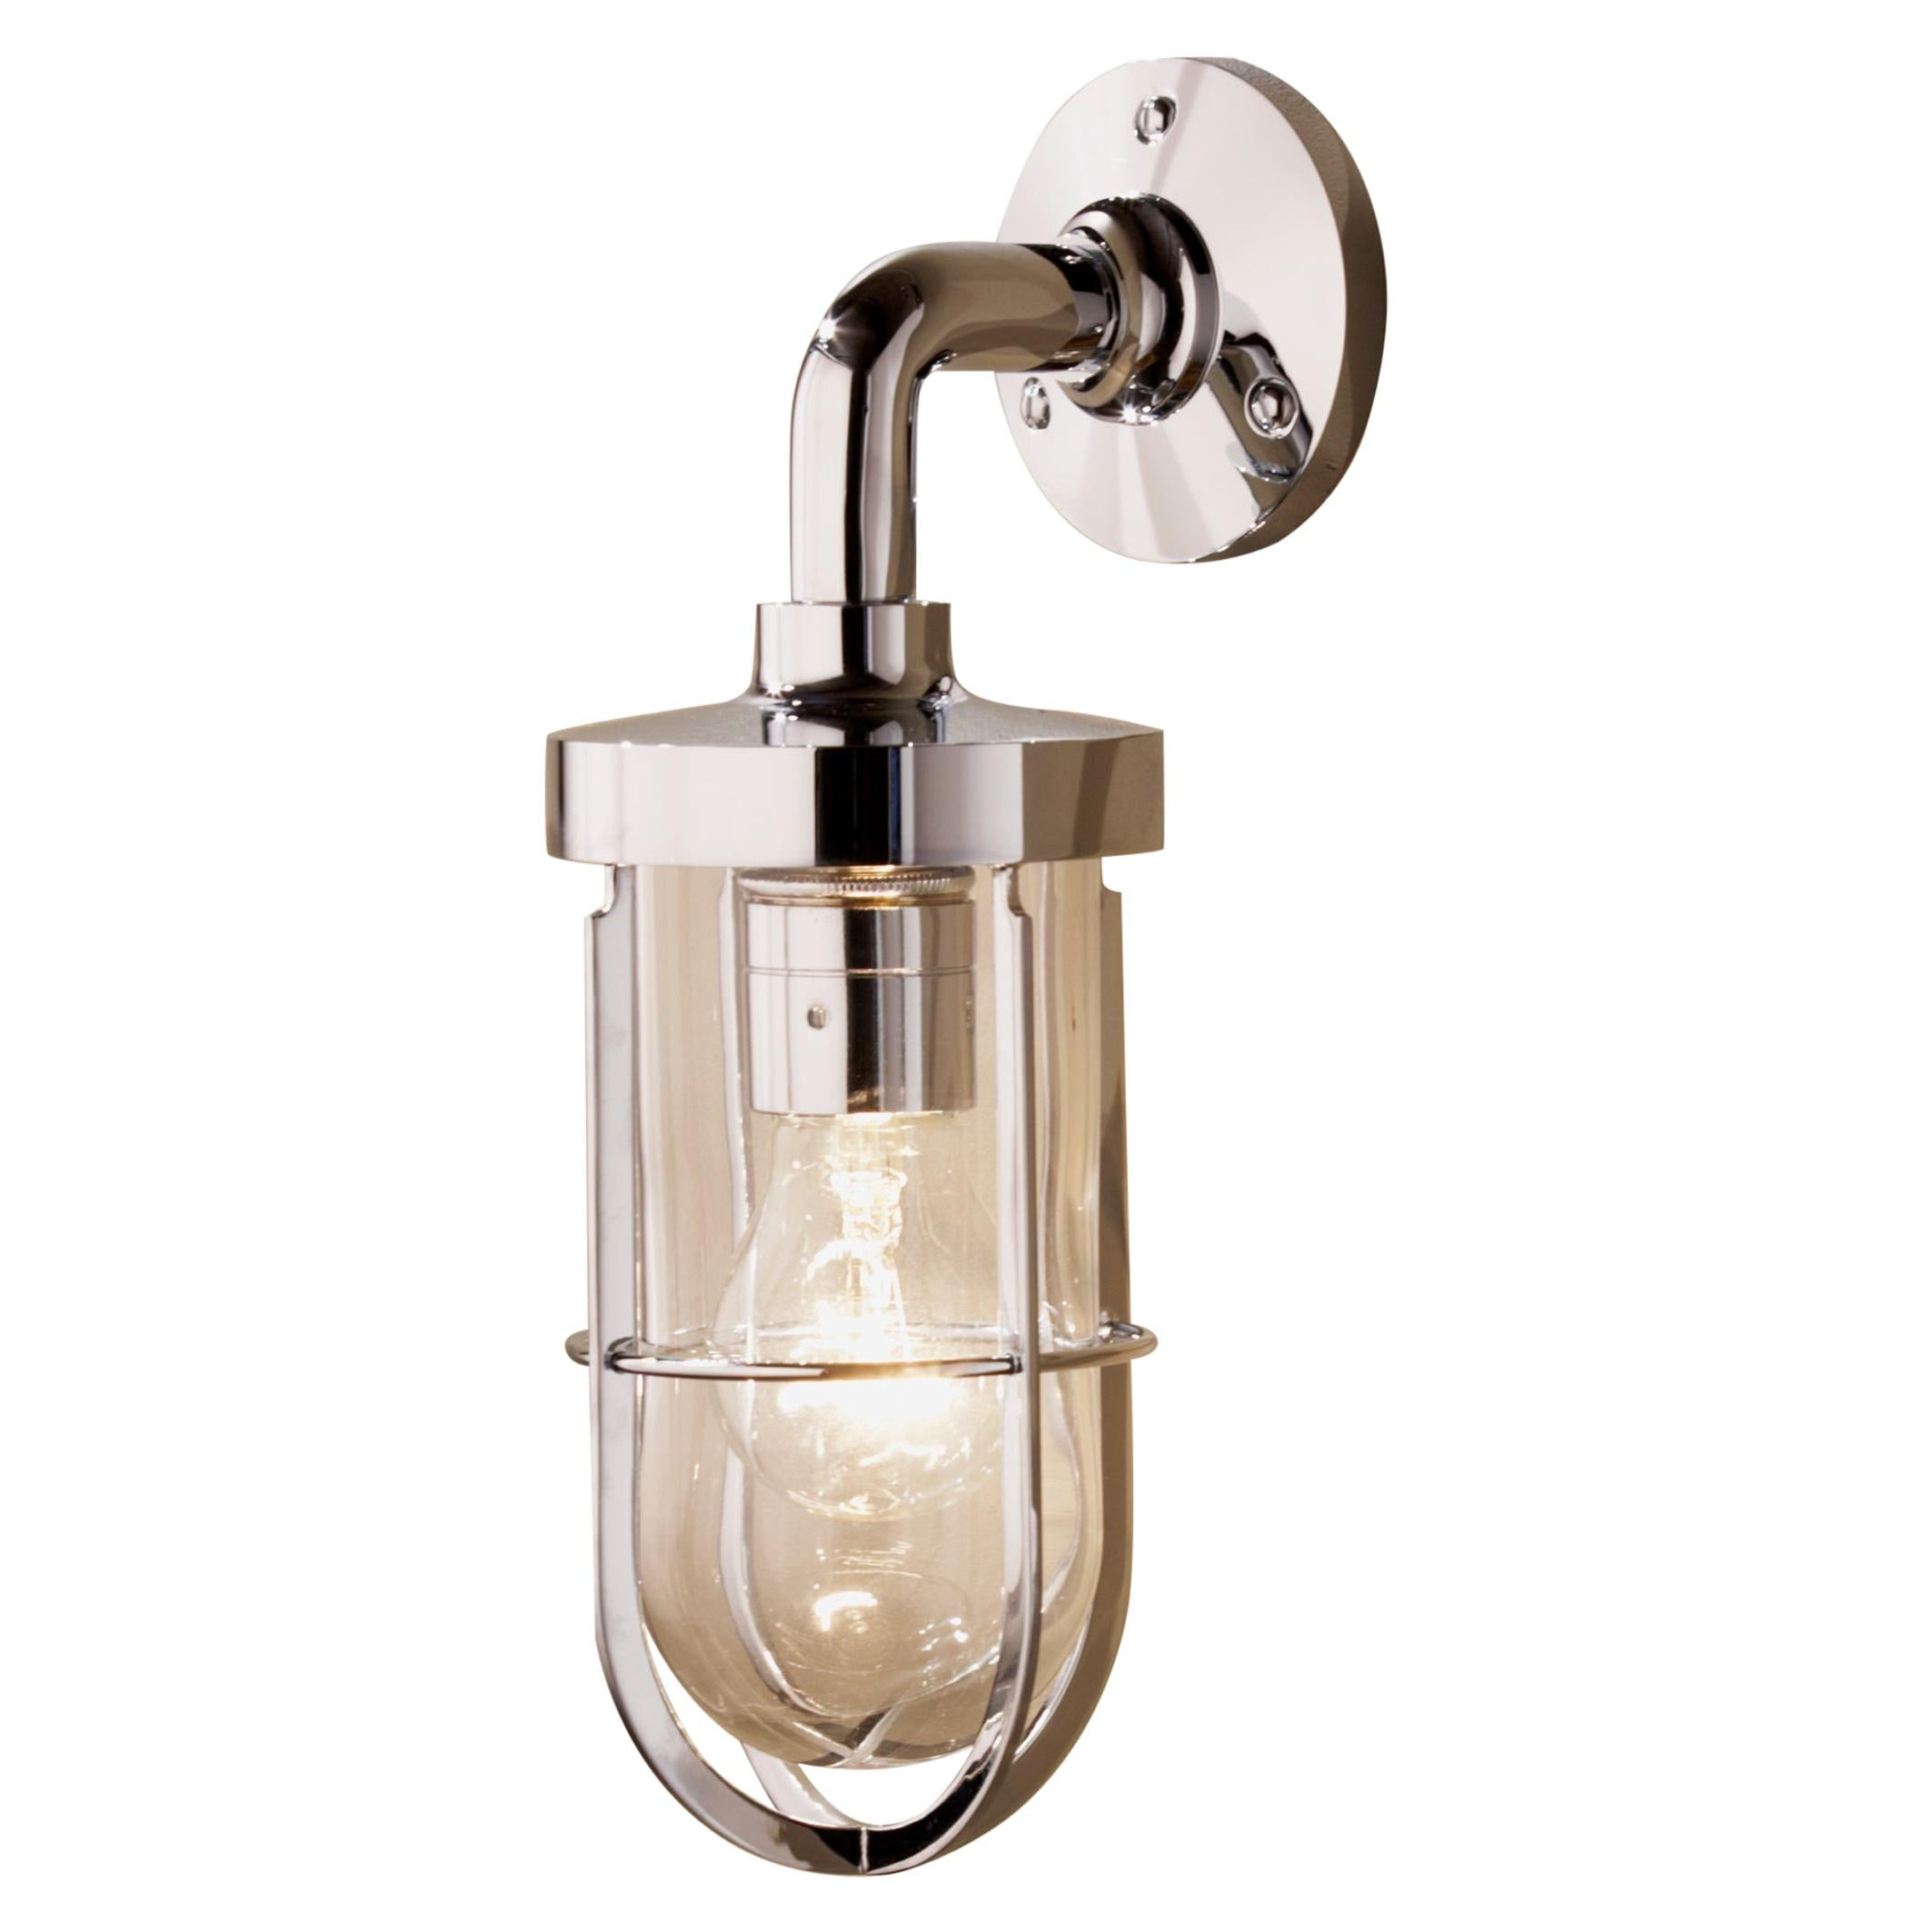 Tekna Docklight Wall Light with Polished Brass Finish and Clear Glass